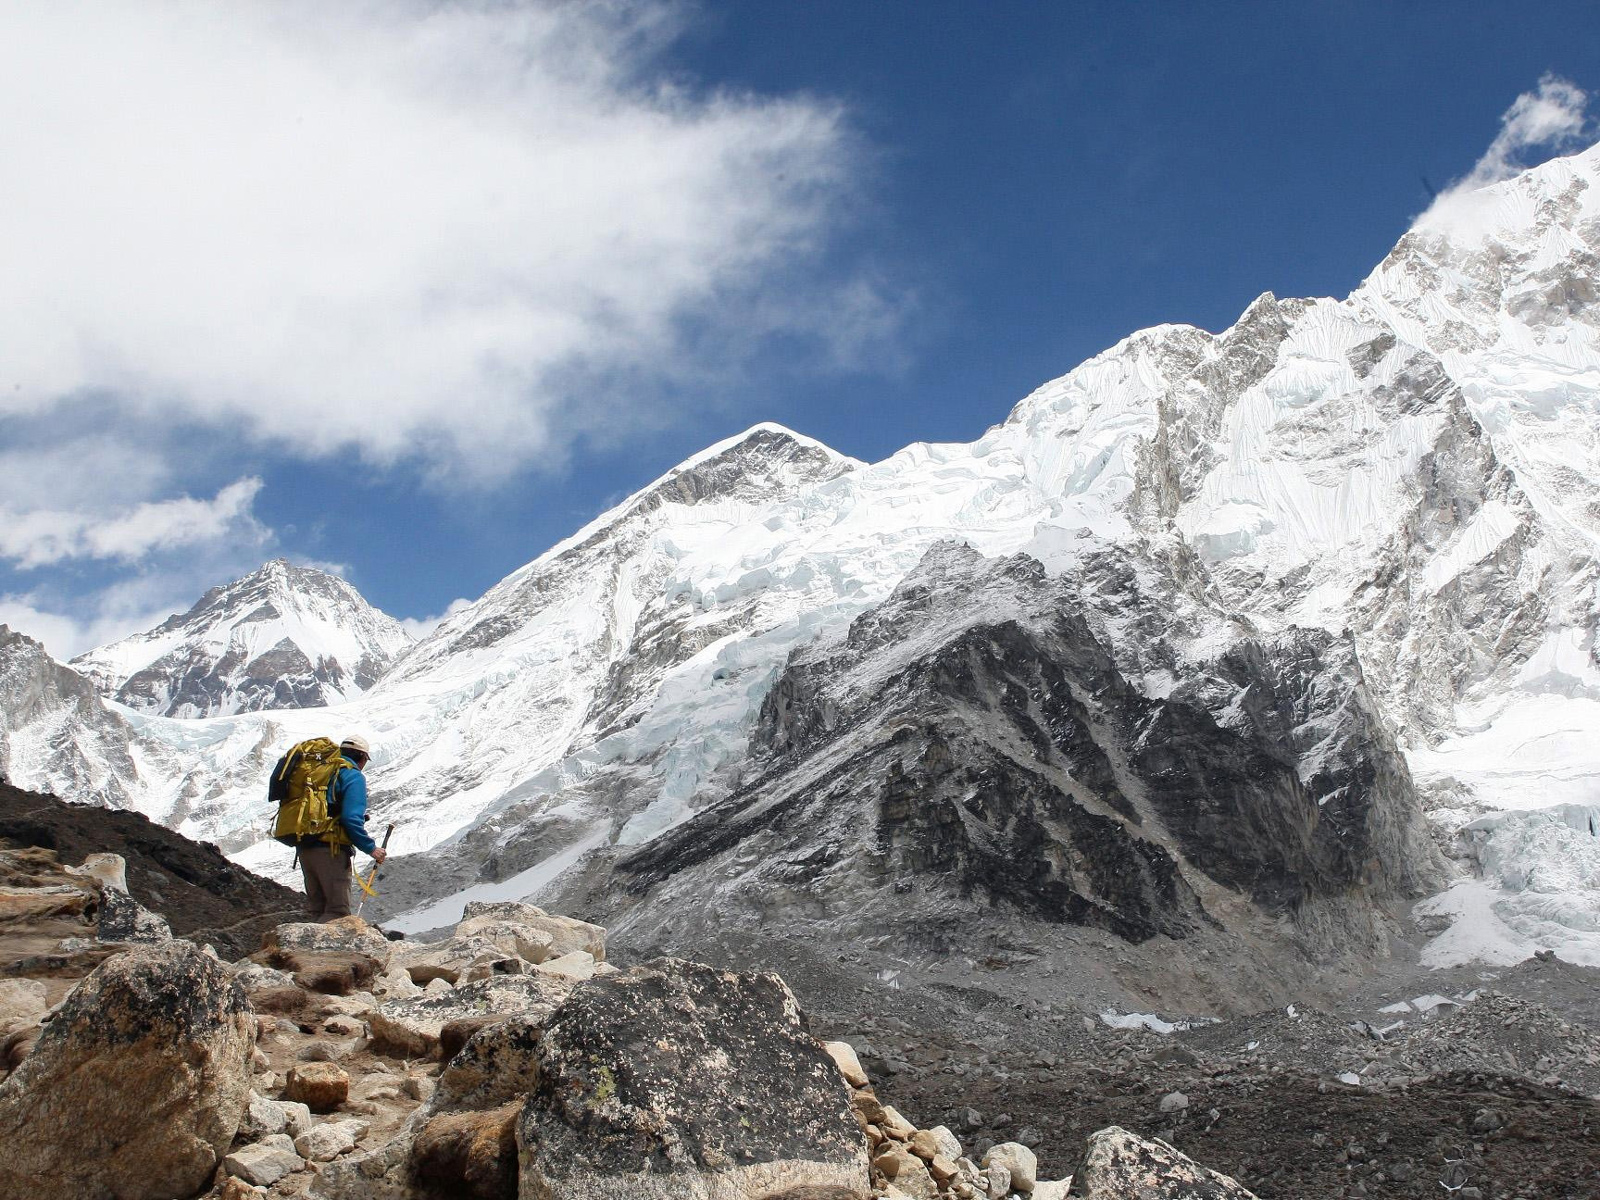 This Mount Everest Pop-Up Restaurant Requires an Eight-Day Climb